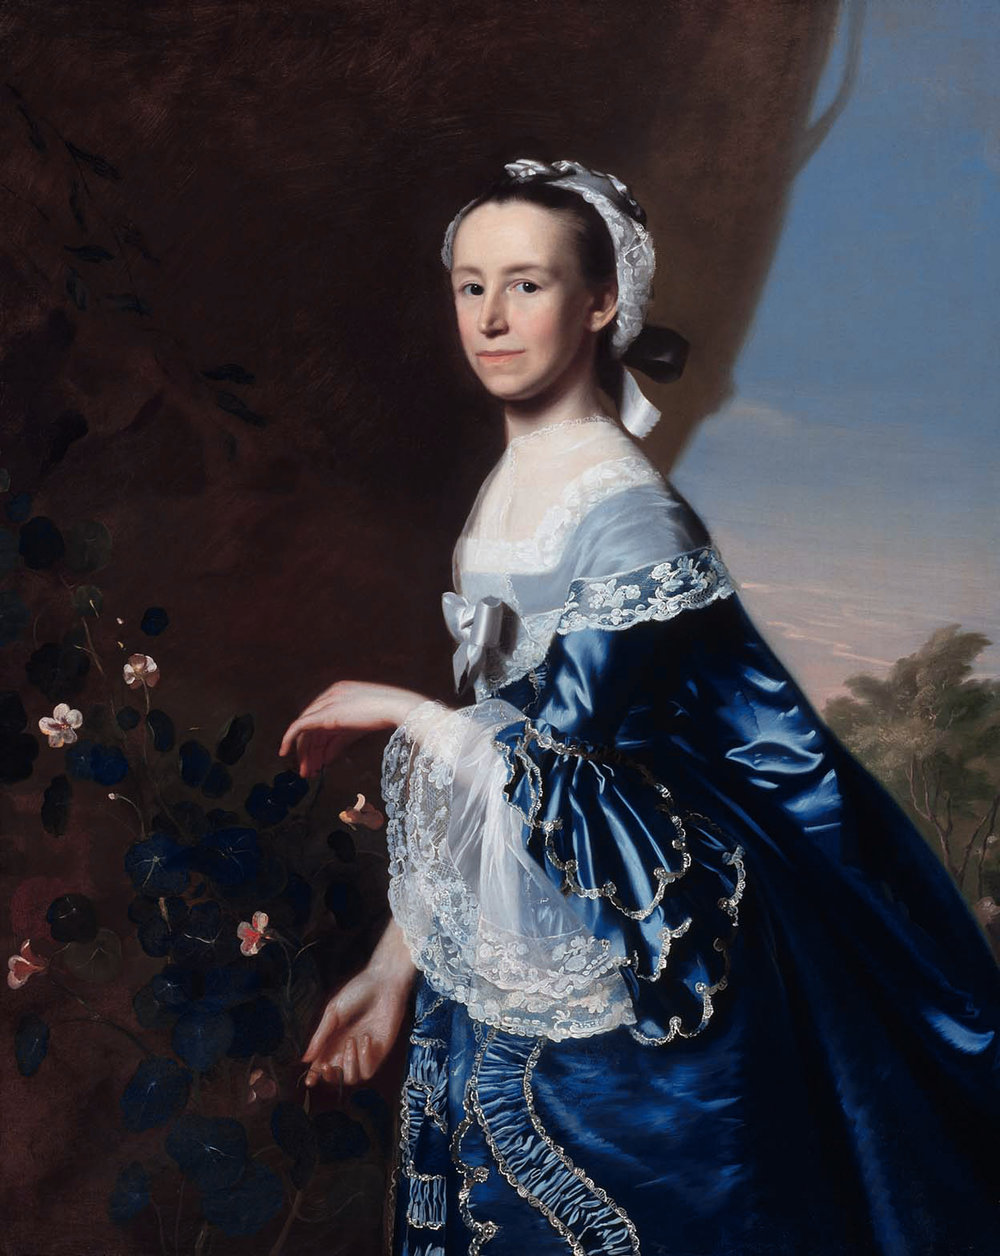 Mercy Otis Warren - Girls were not permitted into schooling during colonial times, causing women to lag behind men in formal education. A young Mercy Otis Warren, however, was undeterred, determined to learn; she sat in on her older brother's classes and tutoring sessions, eventually leading to an interested local reverend investing some of his money to fund an educational program for her.Warren would grow up to become a famous writer who would write numerous books and plays that criticized society and government officials (one of which even predicted the American Revolution) and express her opinions on matters such as early feminism and war. Warren's writing became so influential that the Founding Fathers used her writing to guide their policies and actions. President Jefferson, in particular, admired her so much that he ordered advanced copies of her final book